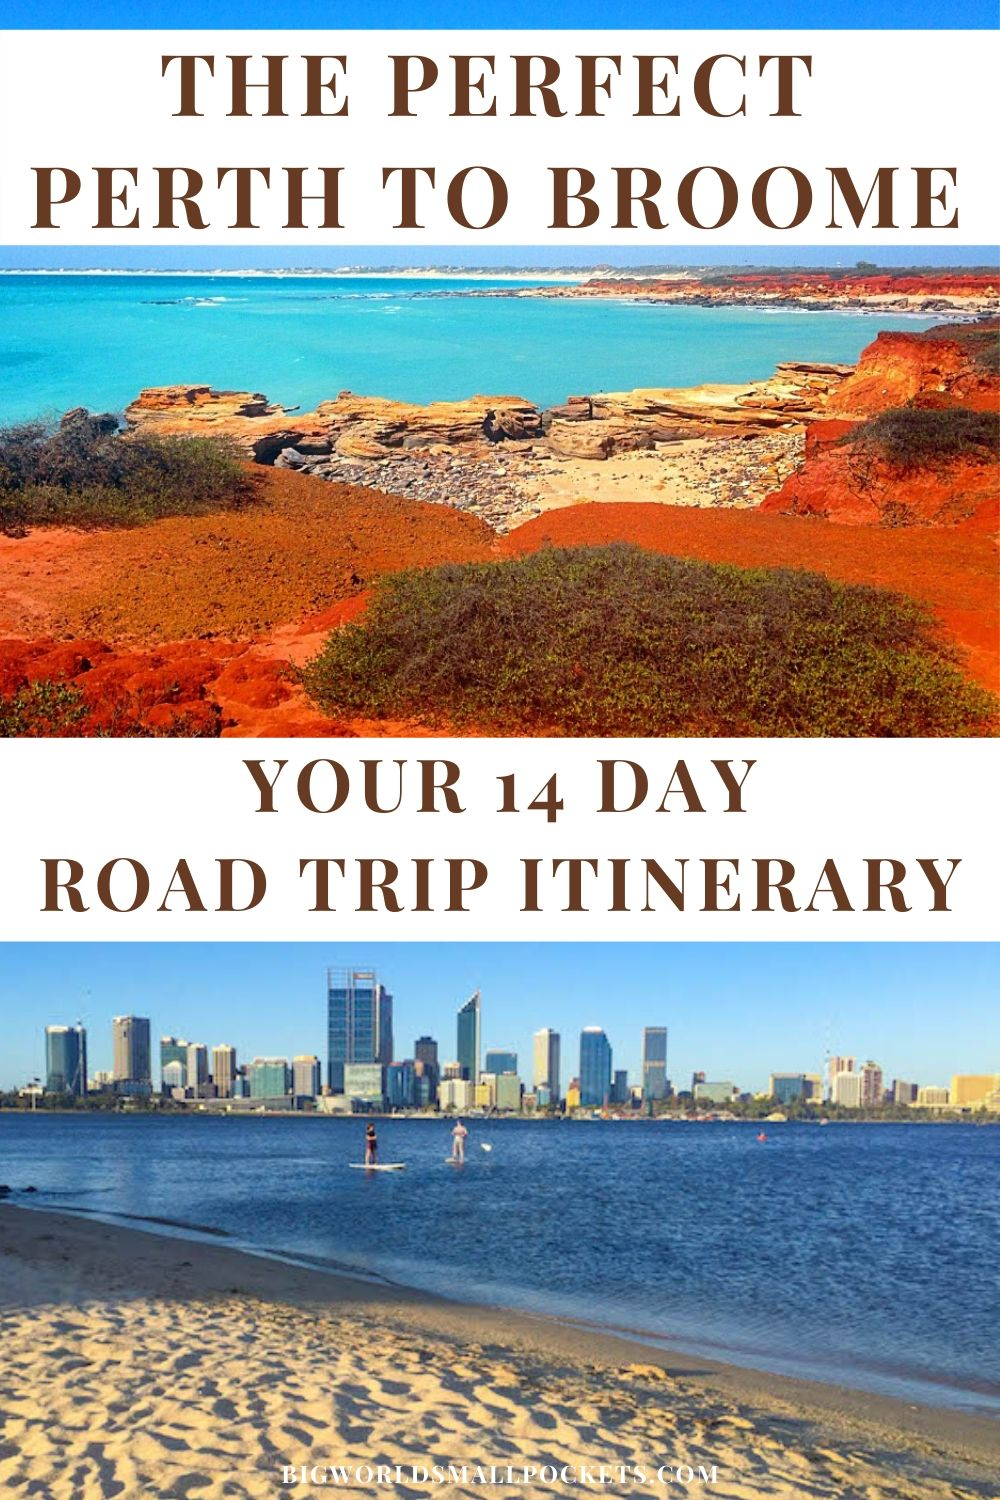 The Perfect Perth to Broome Road Trip Itinerary